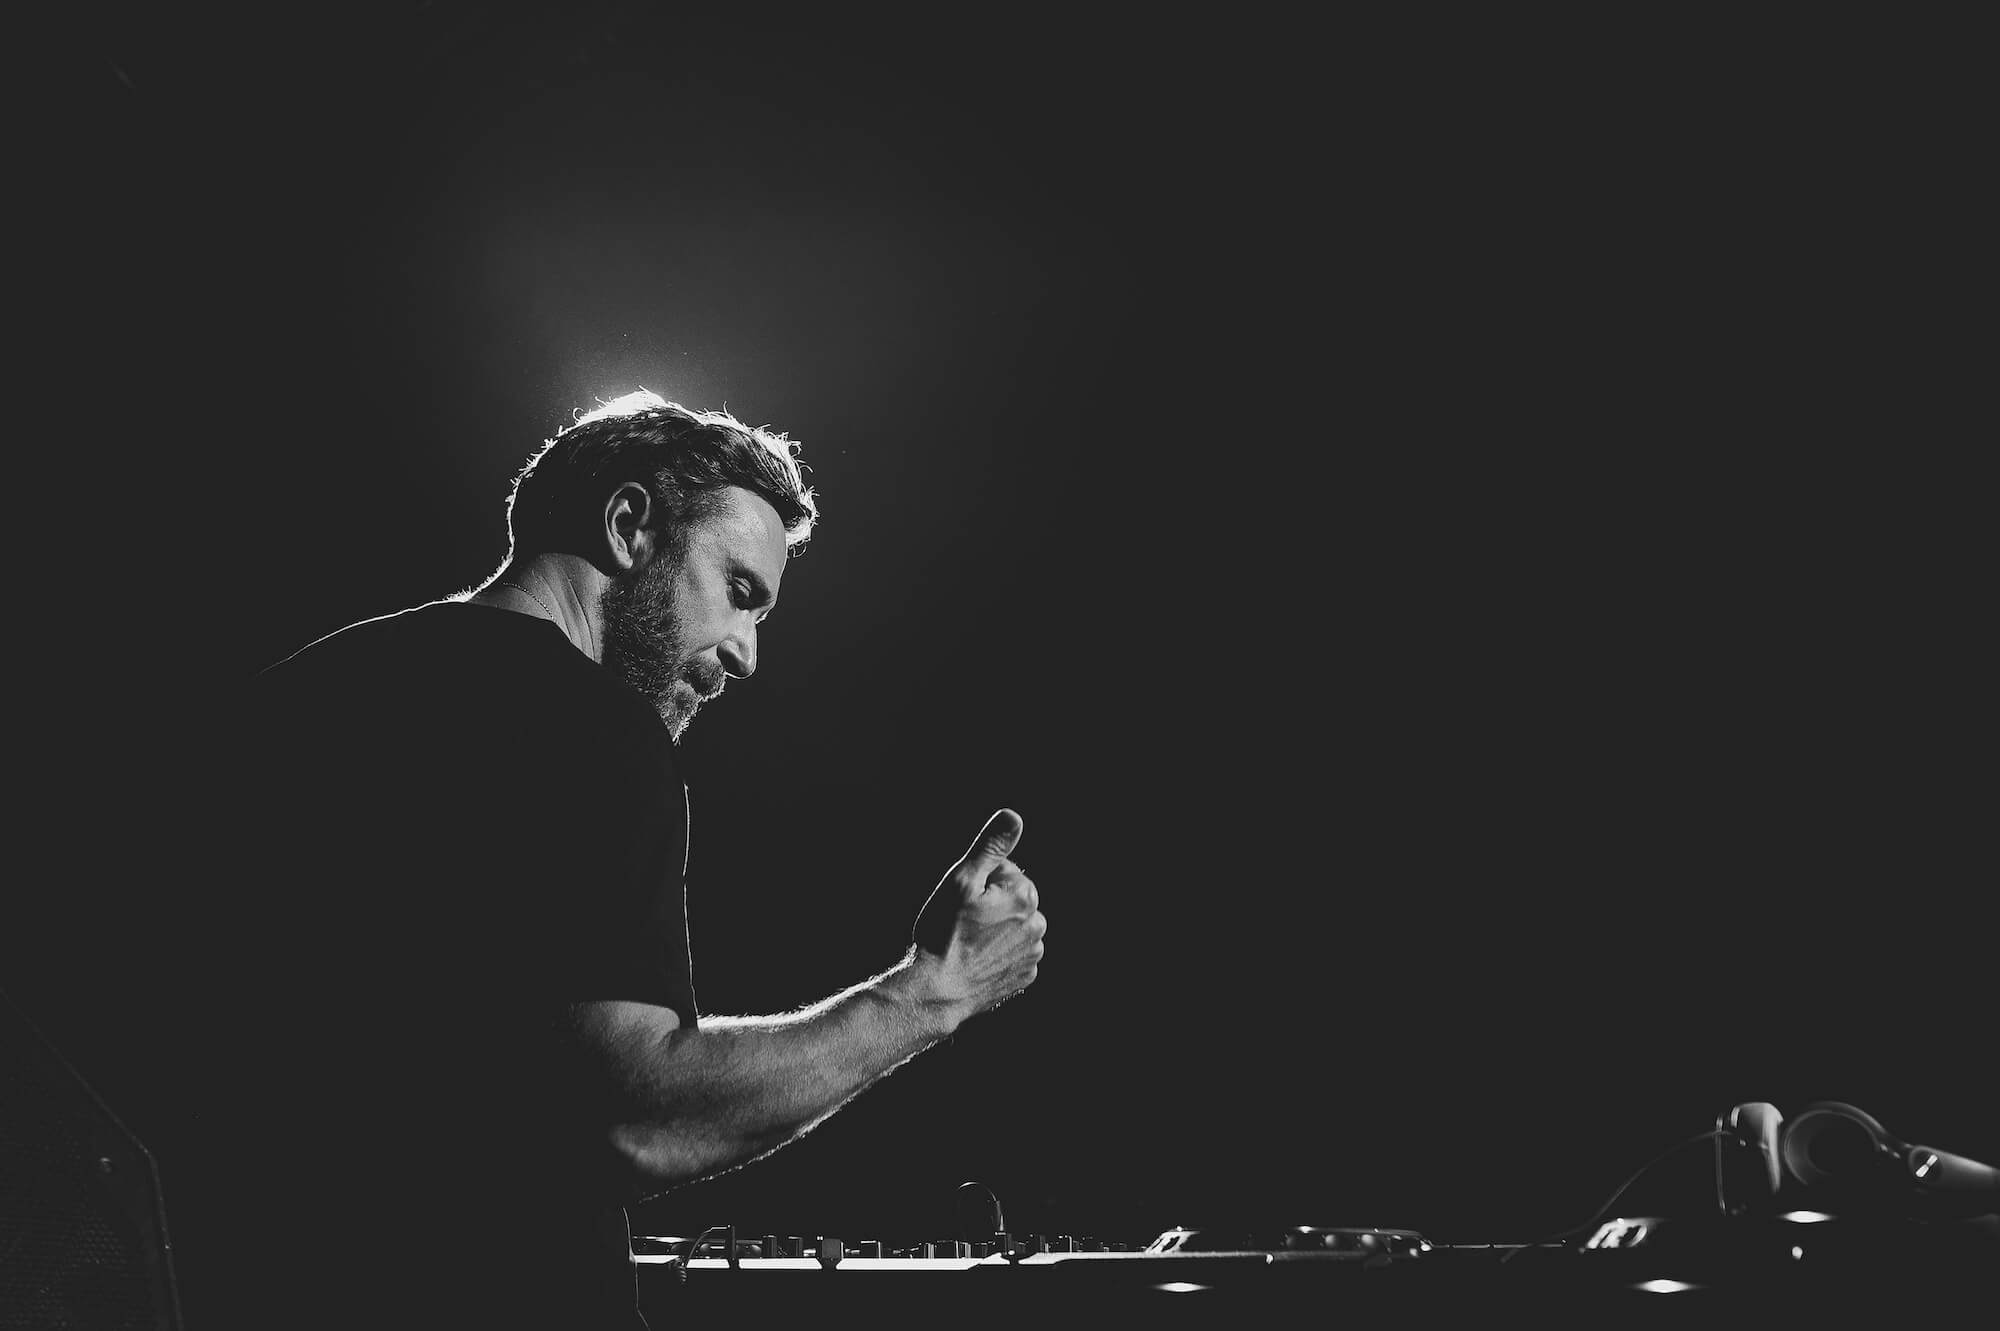 David Guetta plays under Jack Back alias at Winter Music Conference 2019